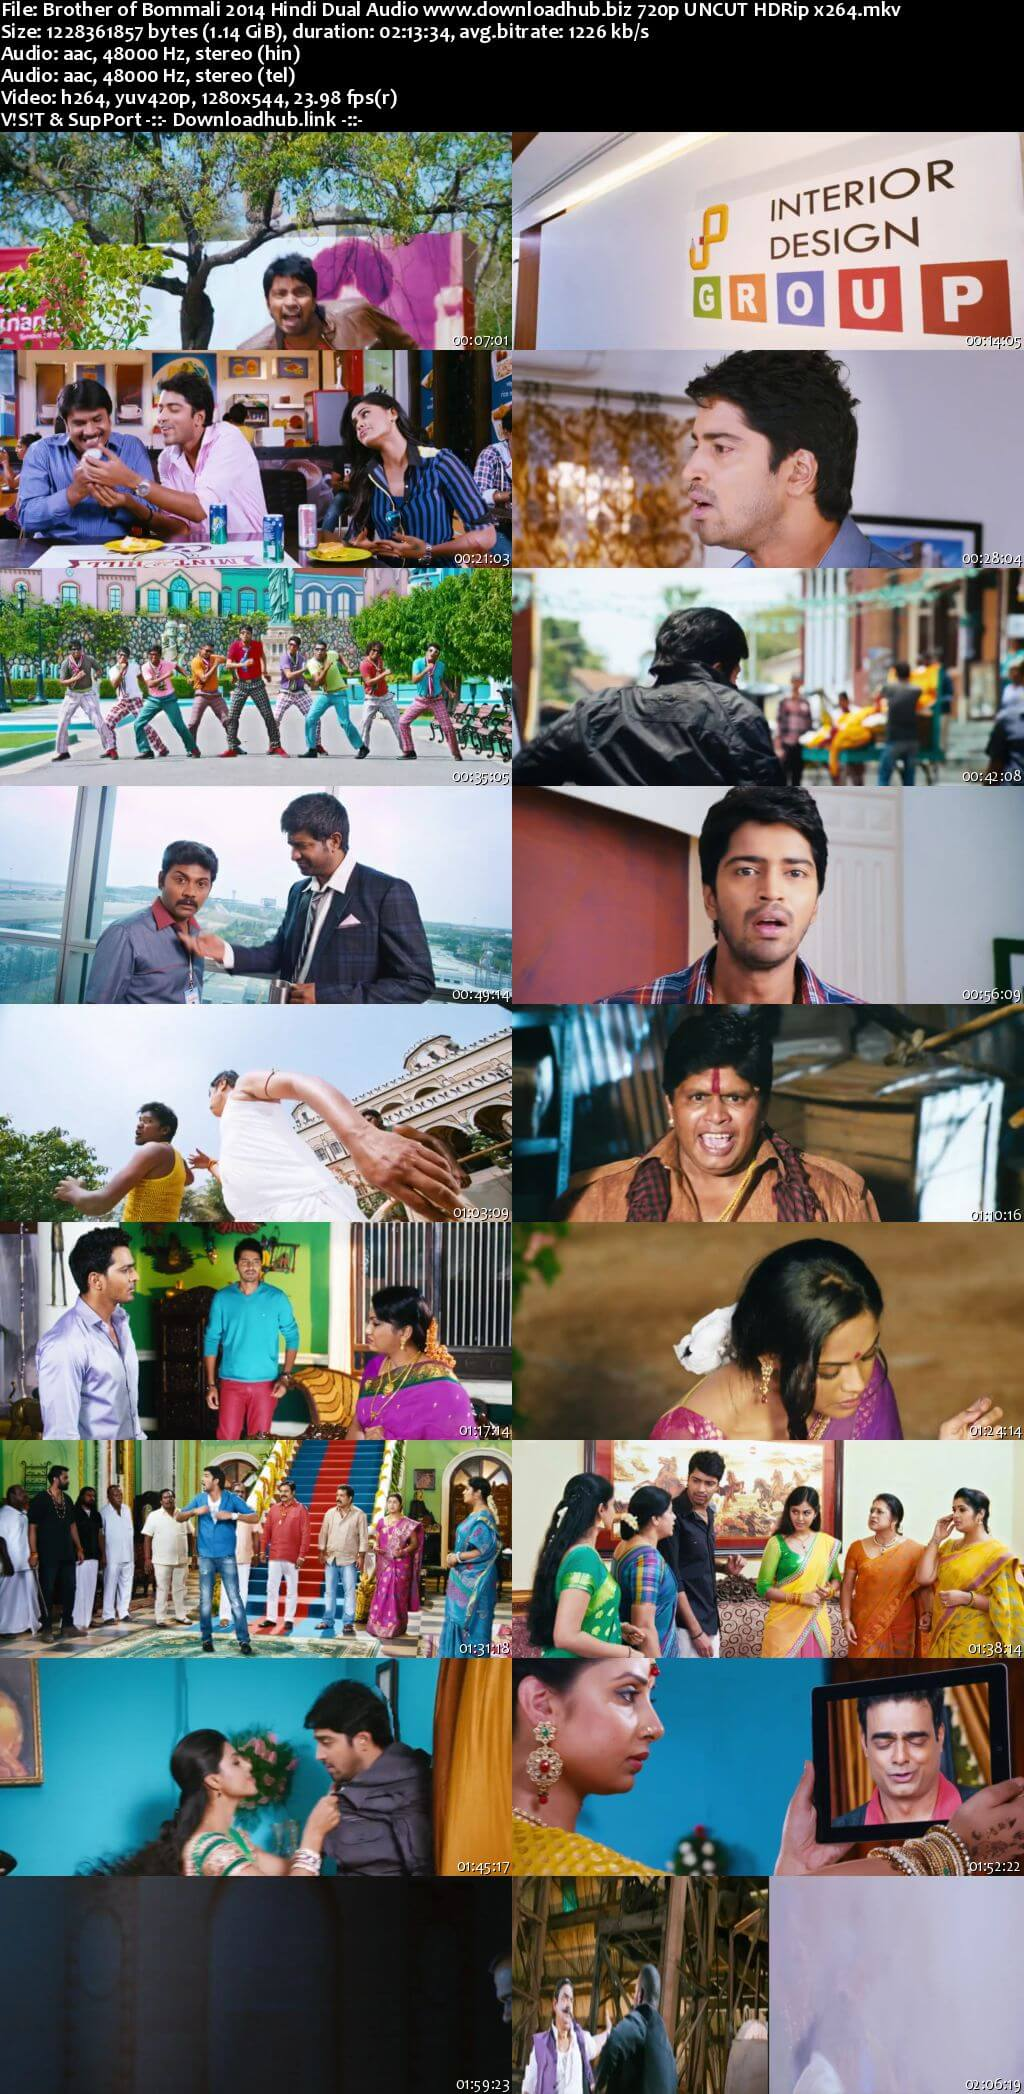 Brother of Bommali 2014 Hindi Dual Audio 720p UNCUT HDRip x264